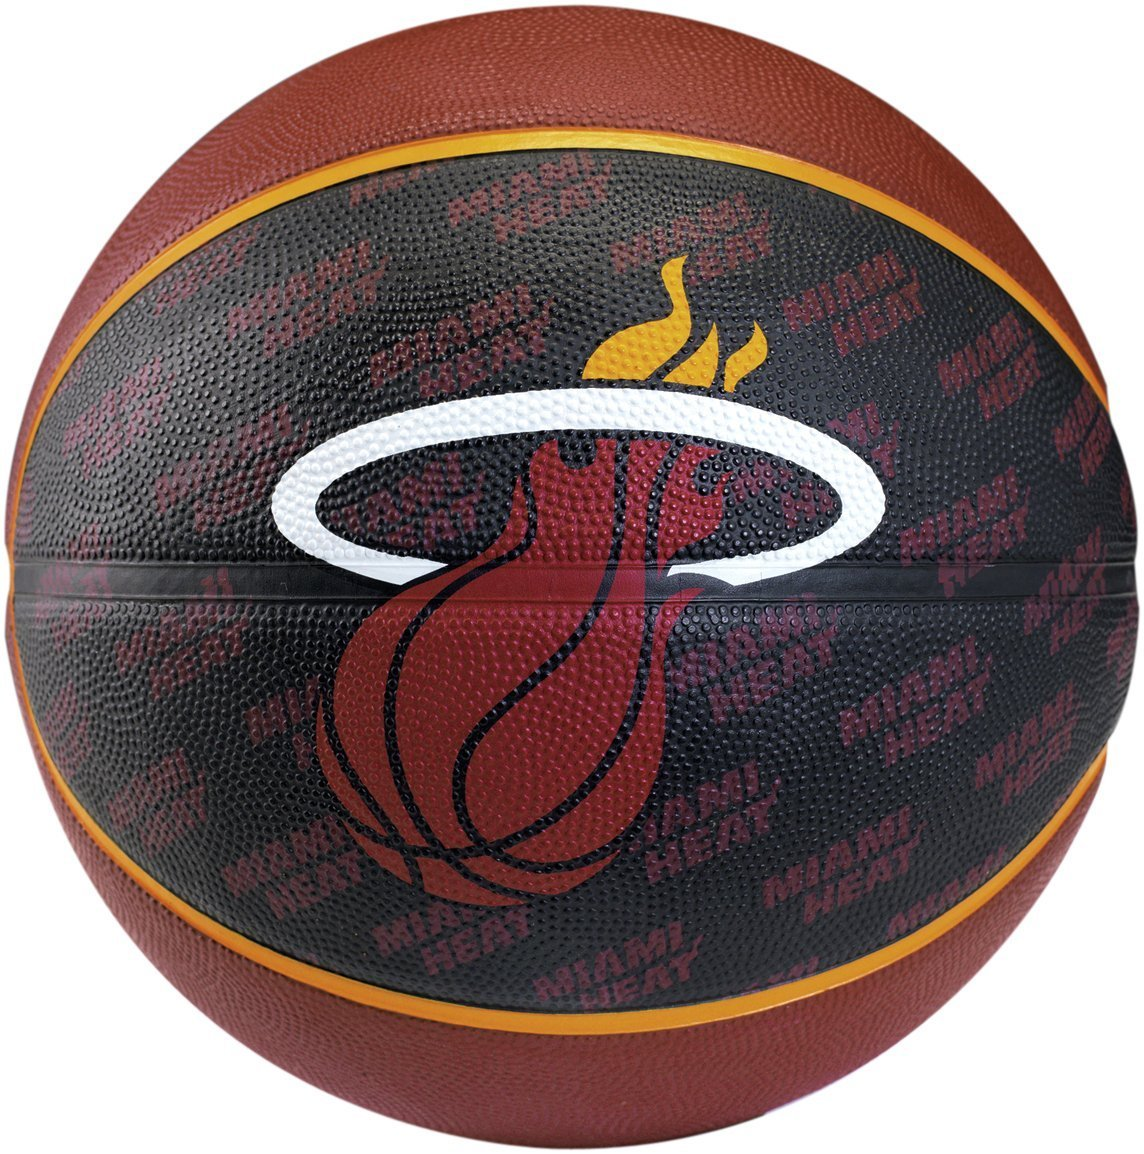 Basketball 7 outd.Miami Heat Spalding